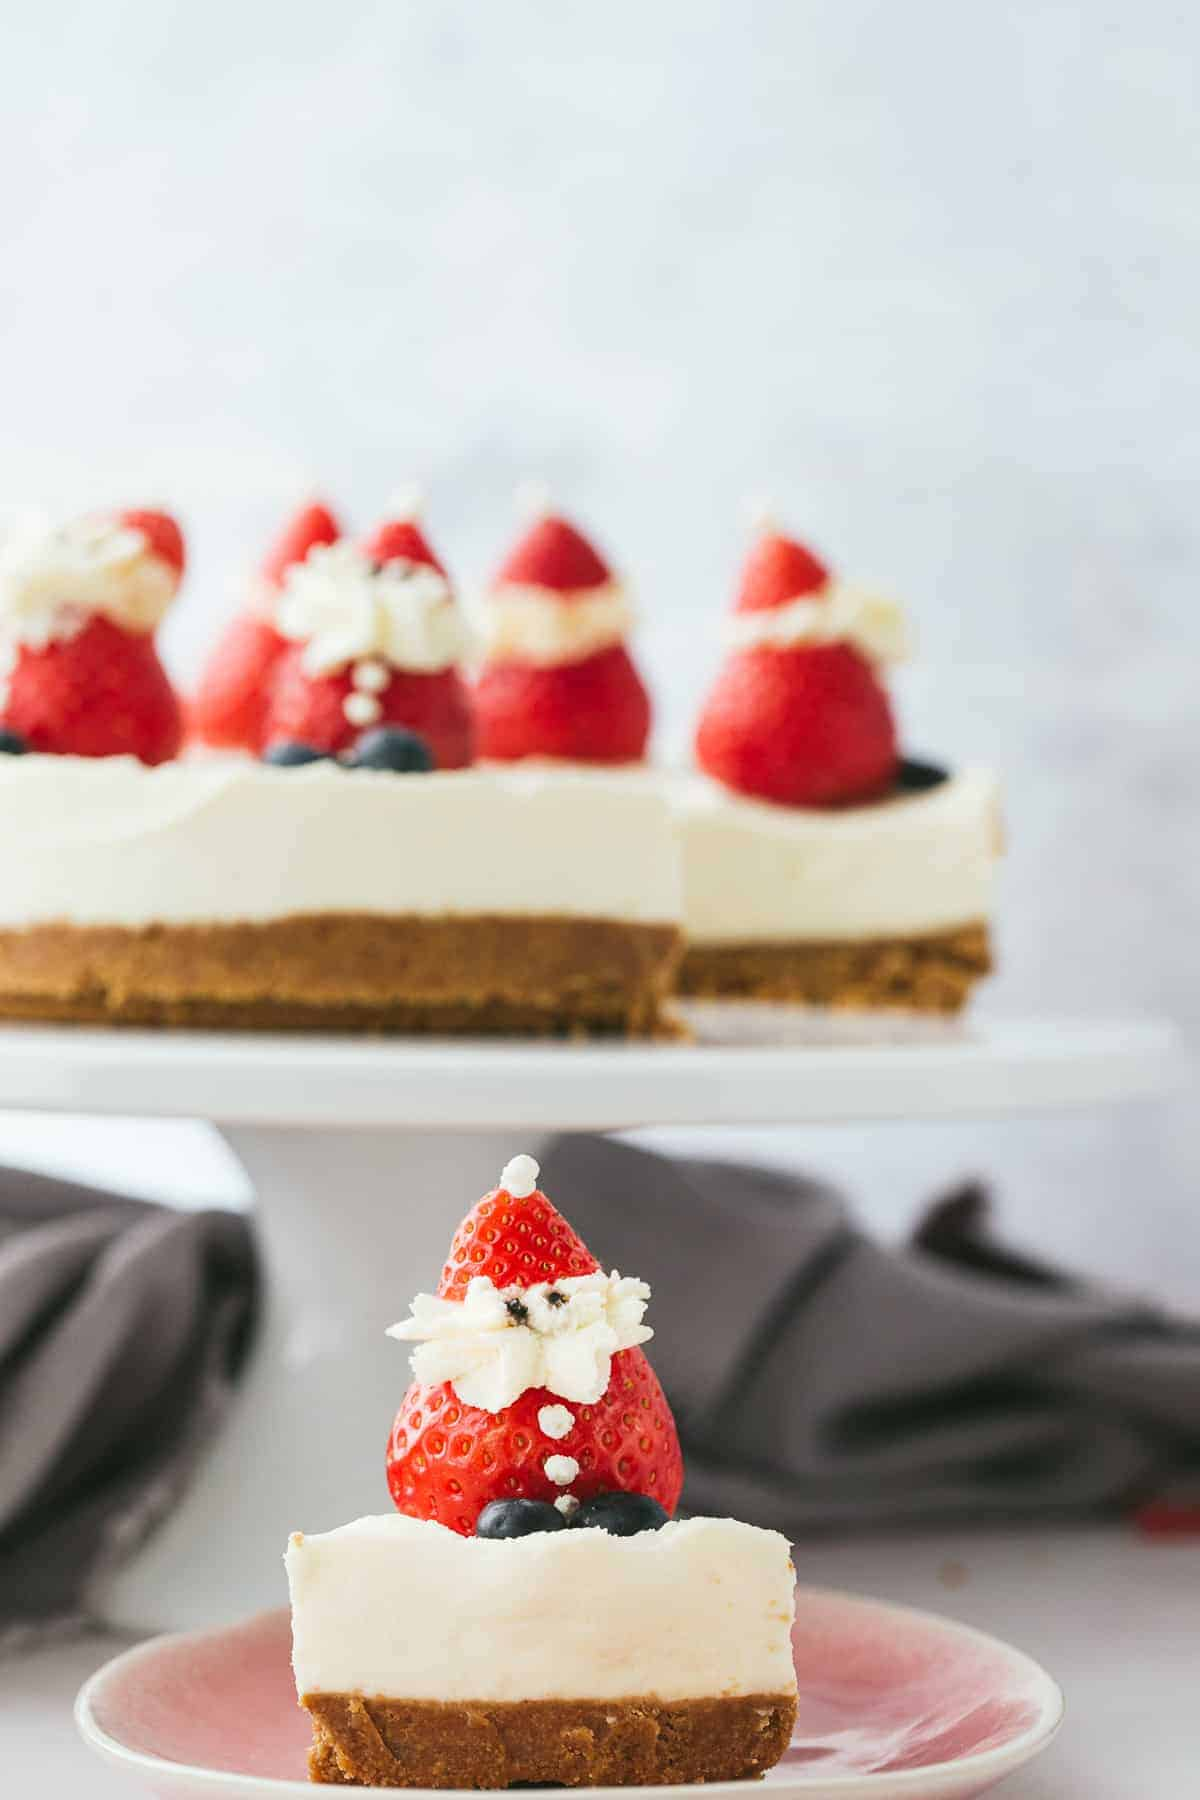 A Christmas Cheesecake.